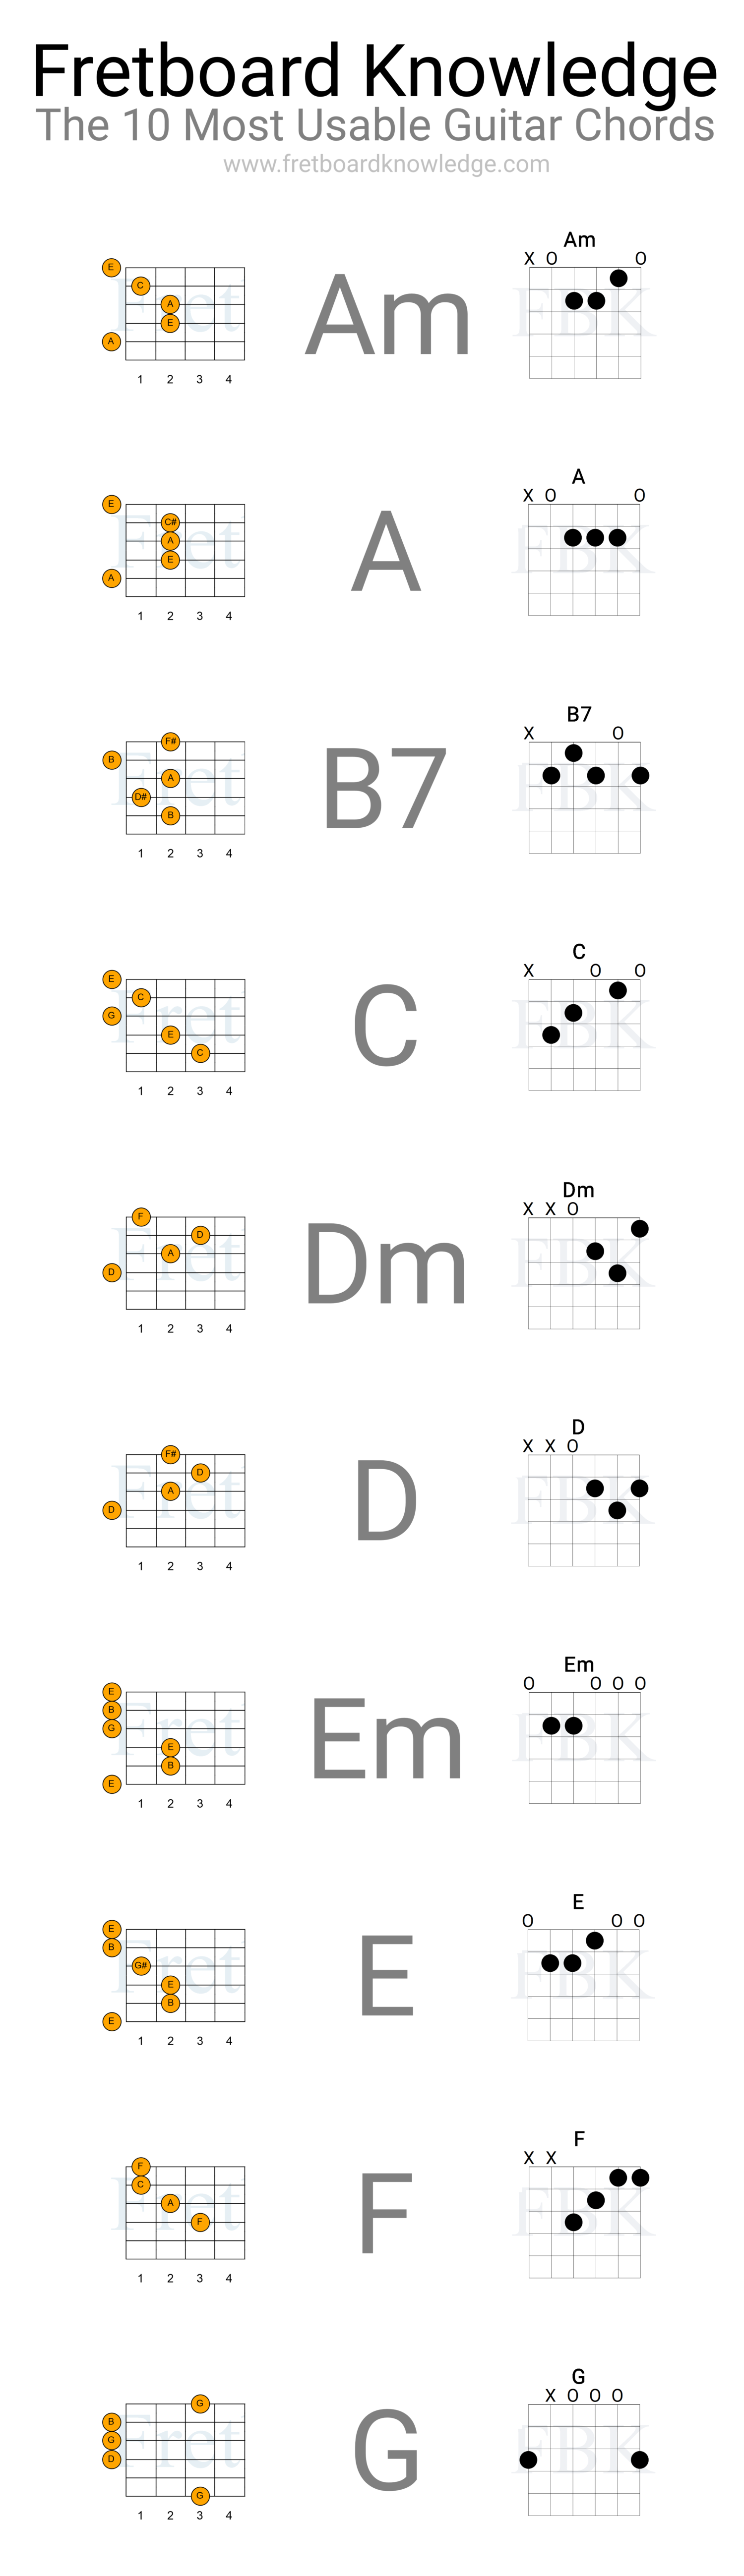 Standard Tuning Archives Page 395 Of 395 Guitar Fretboard Knowledge